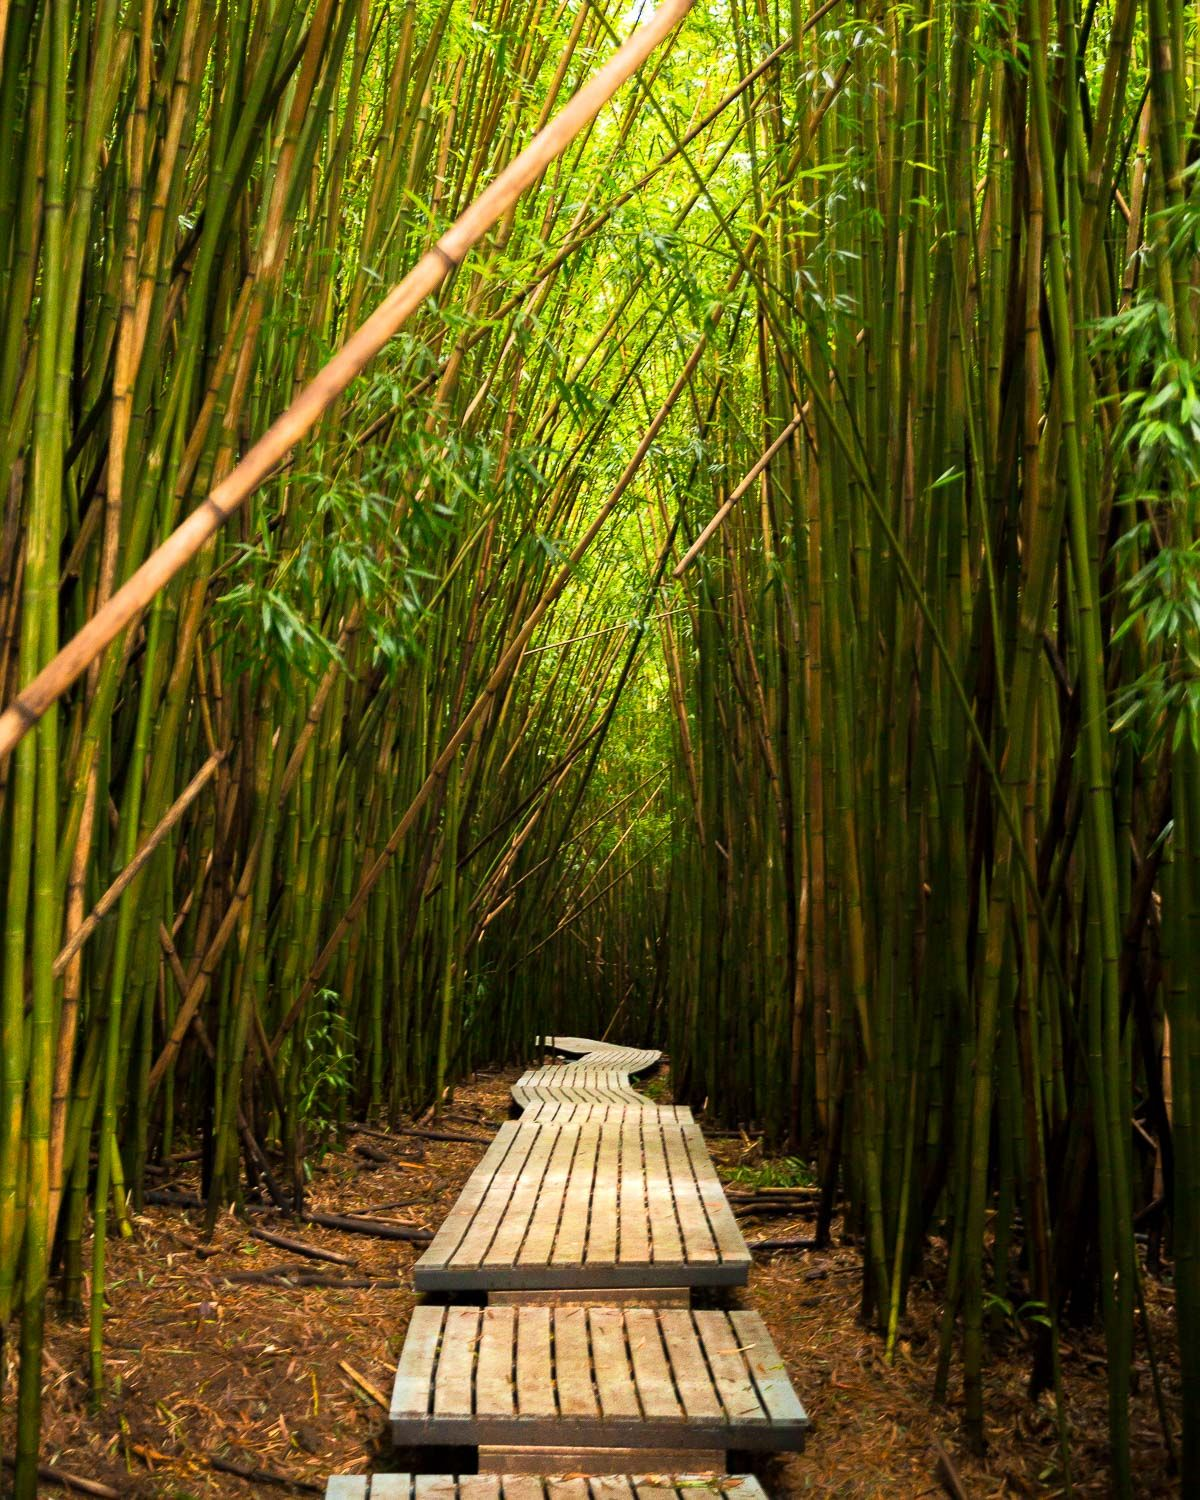 Discovering The Bamboo Forest & Waimoku Falls At Kipahulu